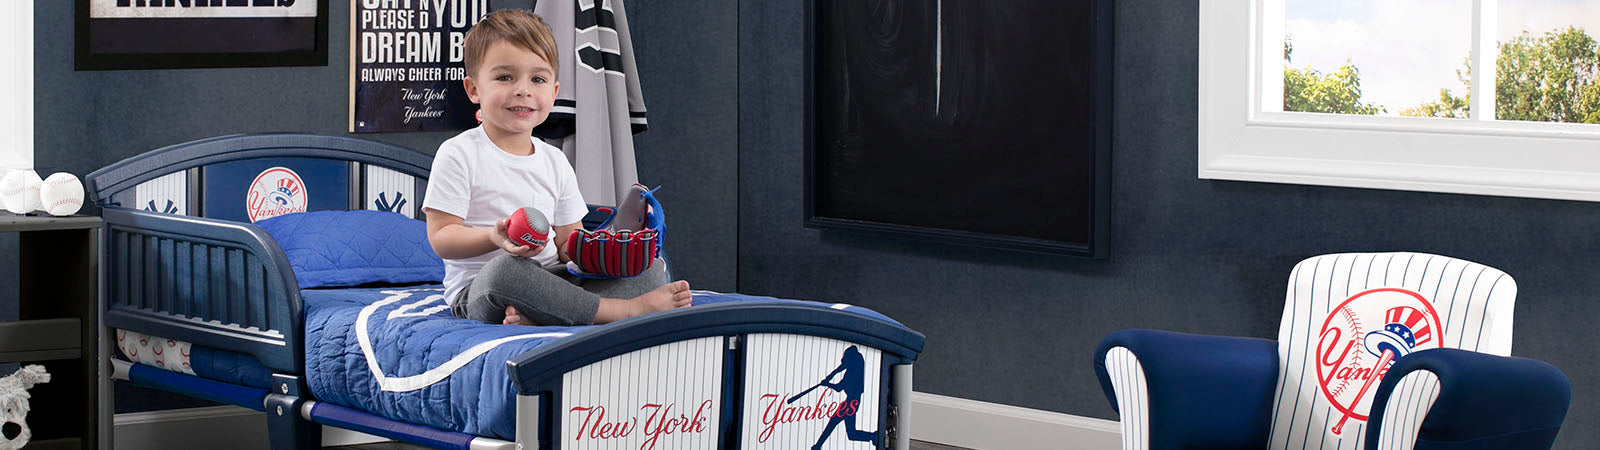 Little Boy spending time in his New York Yankees room